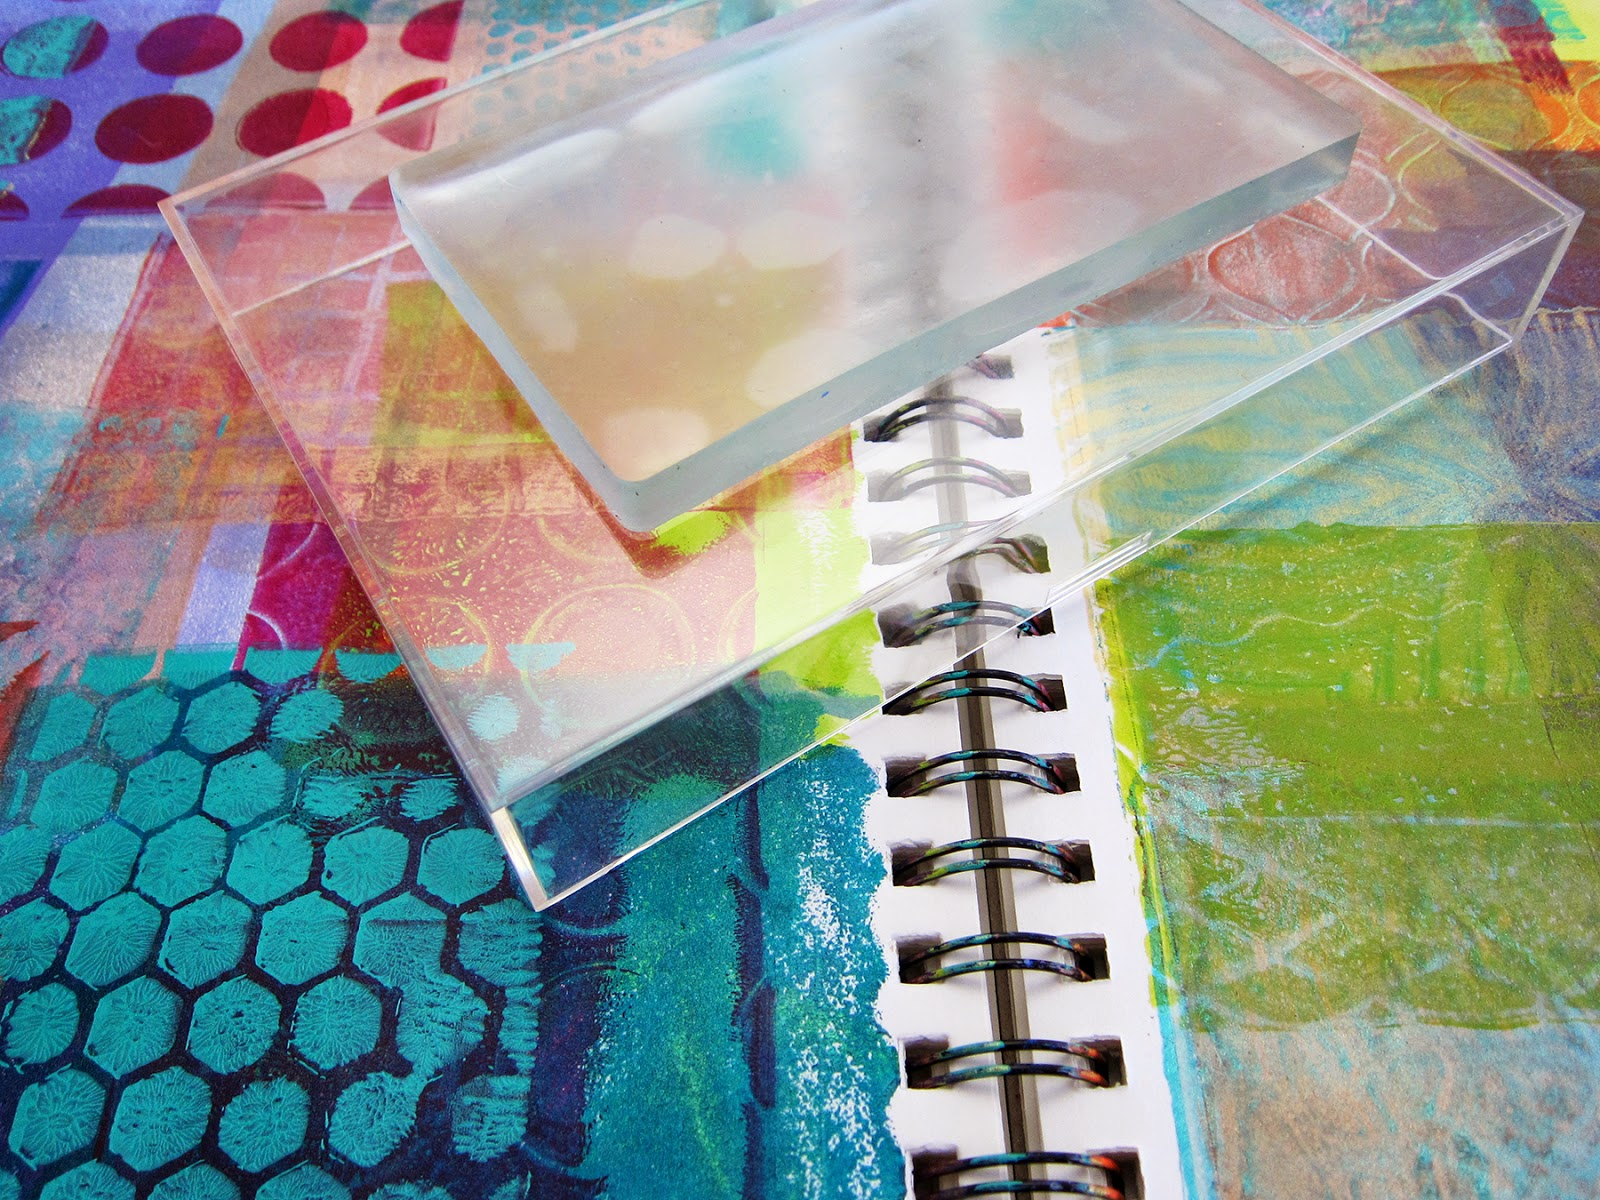 scrapbooking-gelli-plate-3-x-5-inches